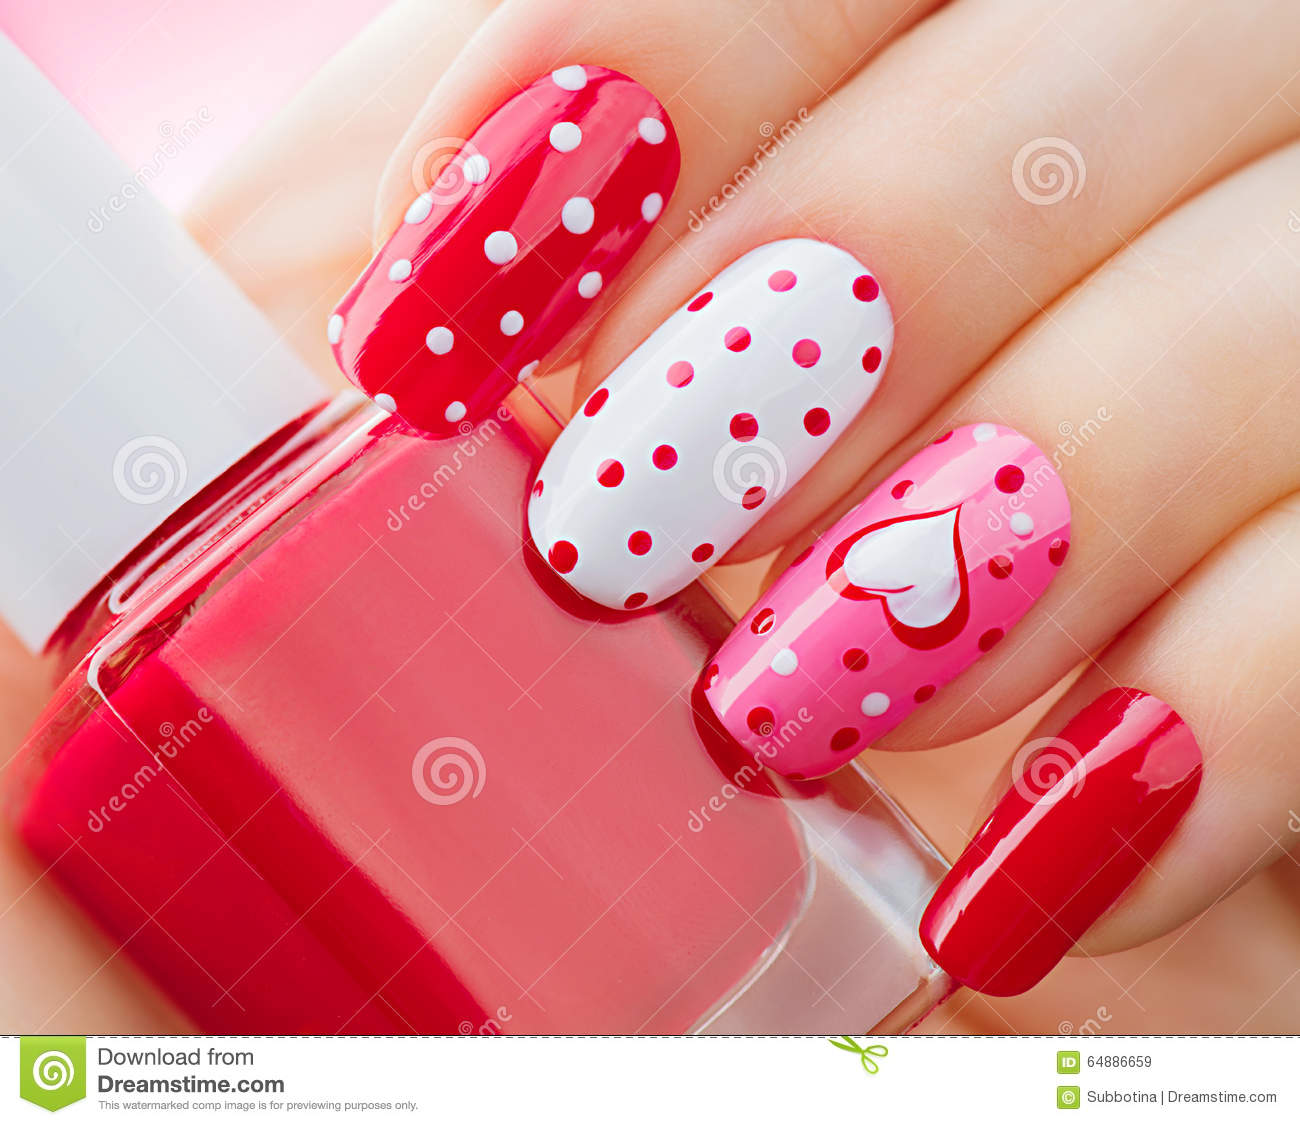 Valentines Day Holiday Manicure With Painted Hearts And Polka Dots Stock Photo Image 64886659